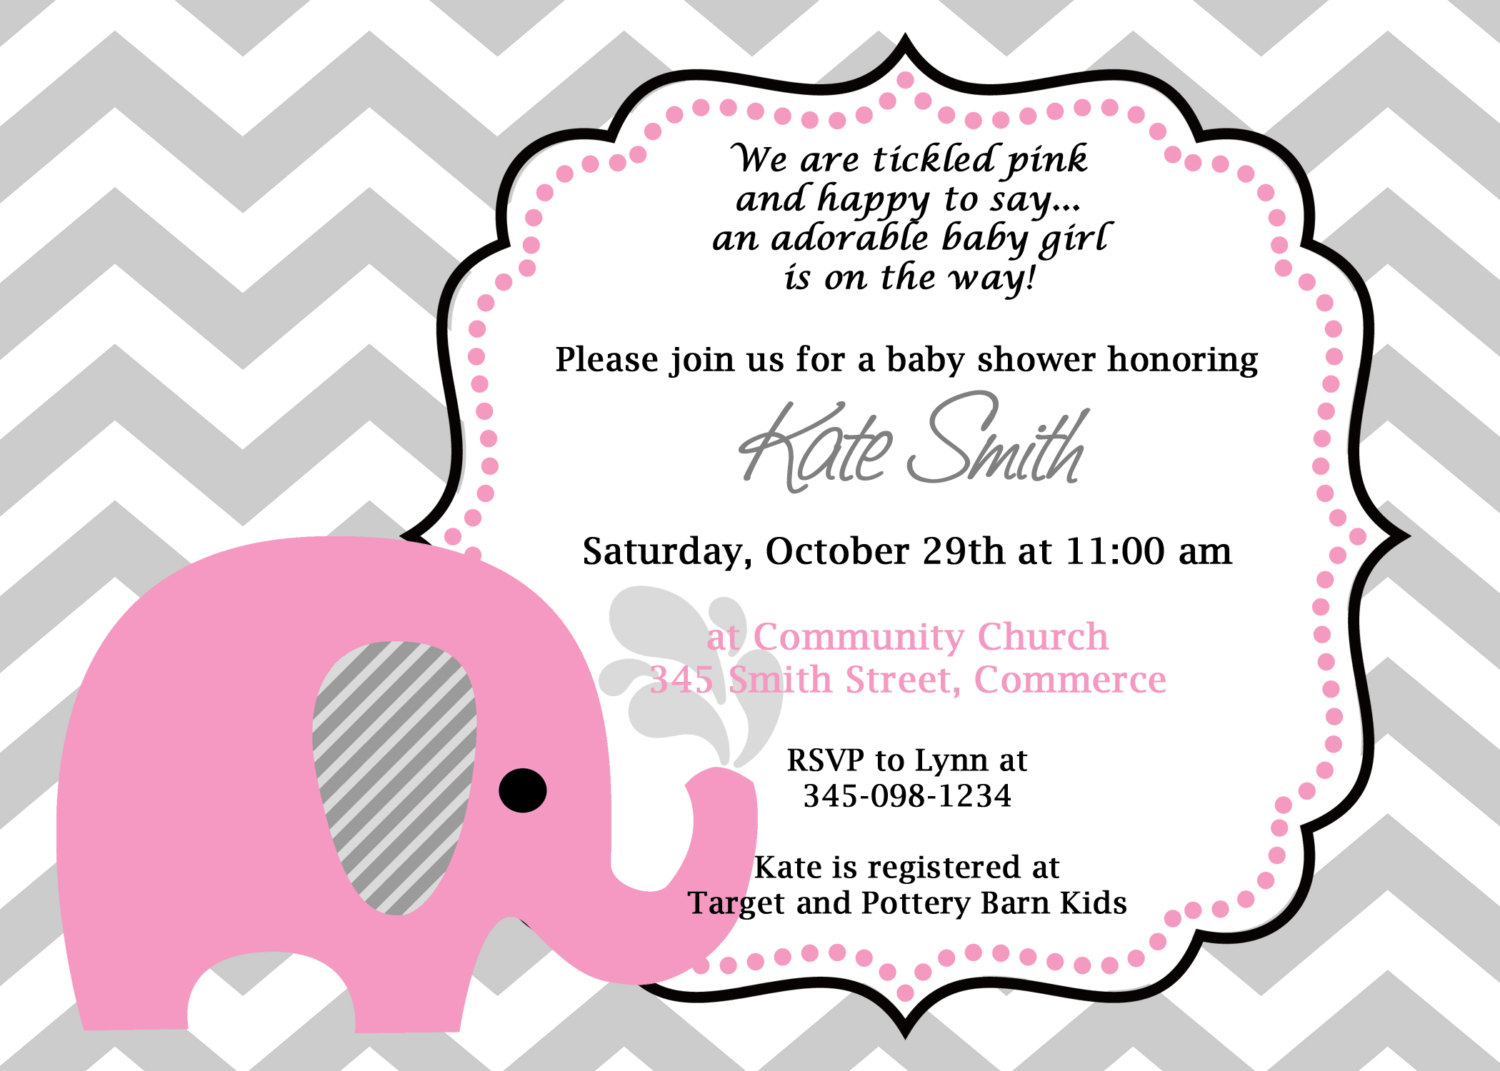 10 Nice Cute Ideas For Baby Shower Invitations elephant themed baby shower invitation wording e280a2 baby showers design